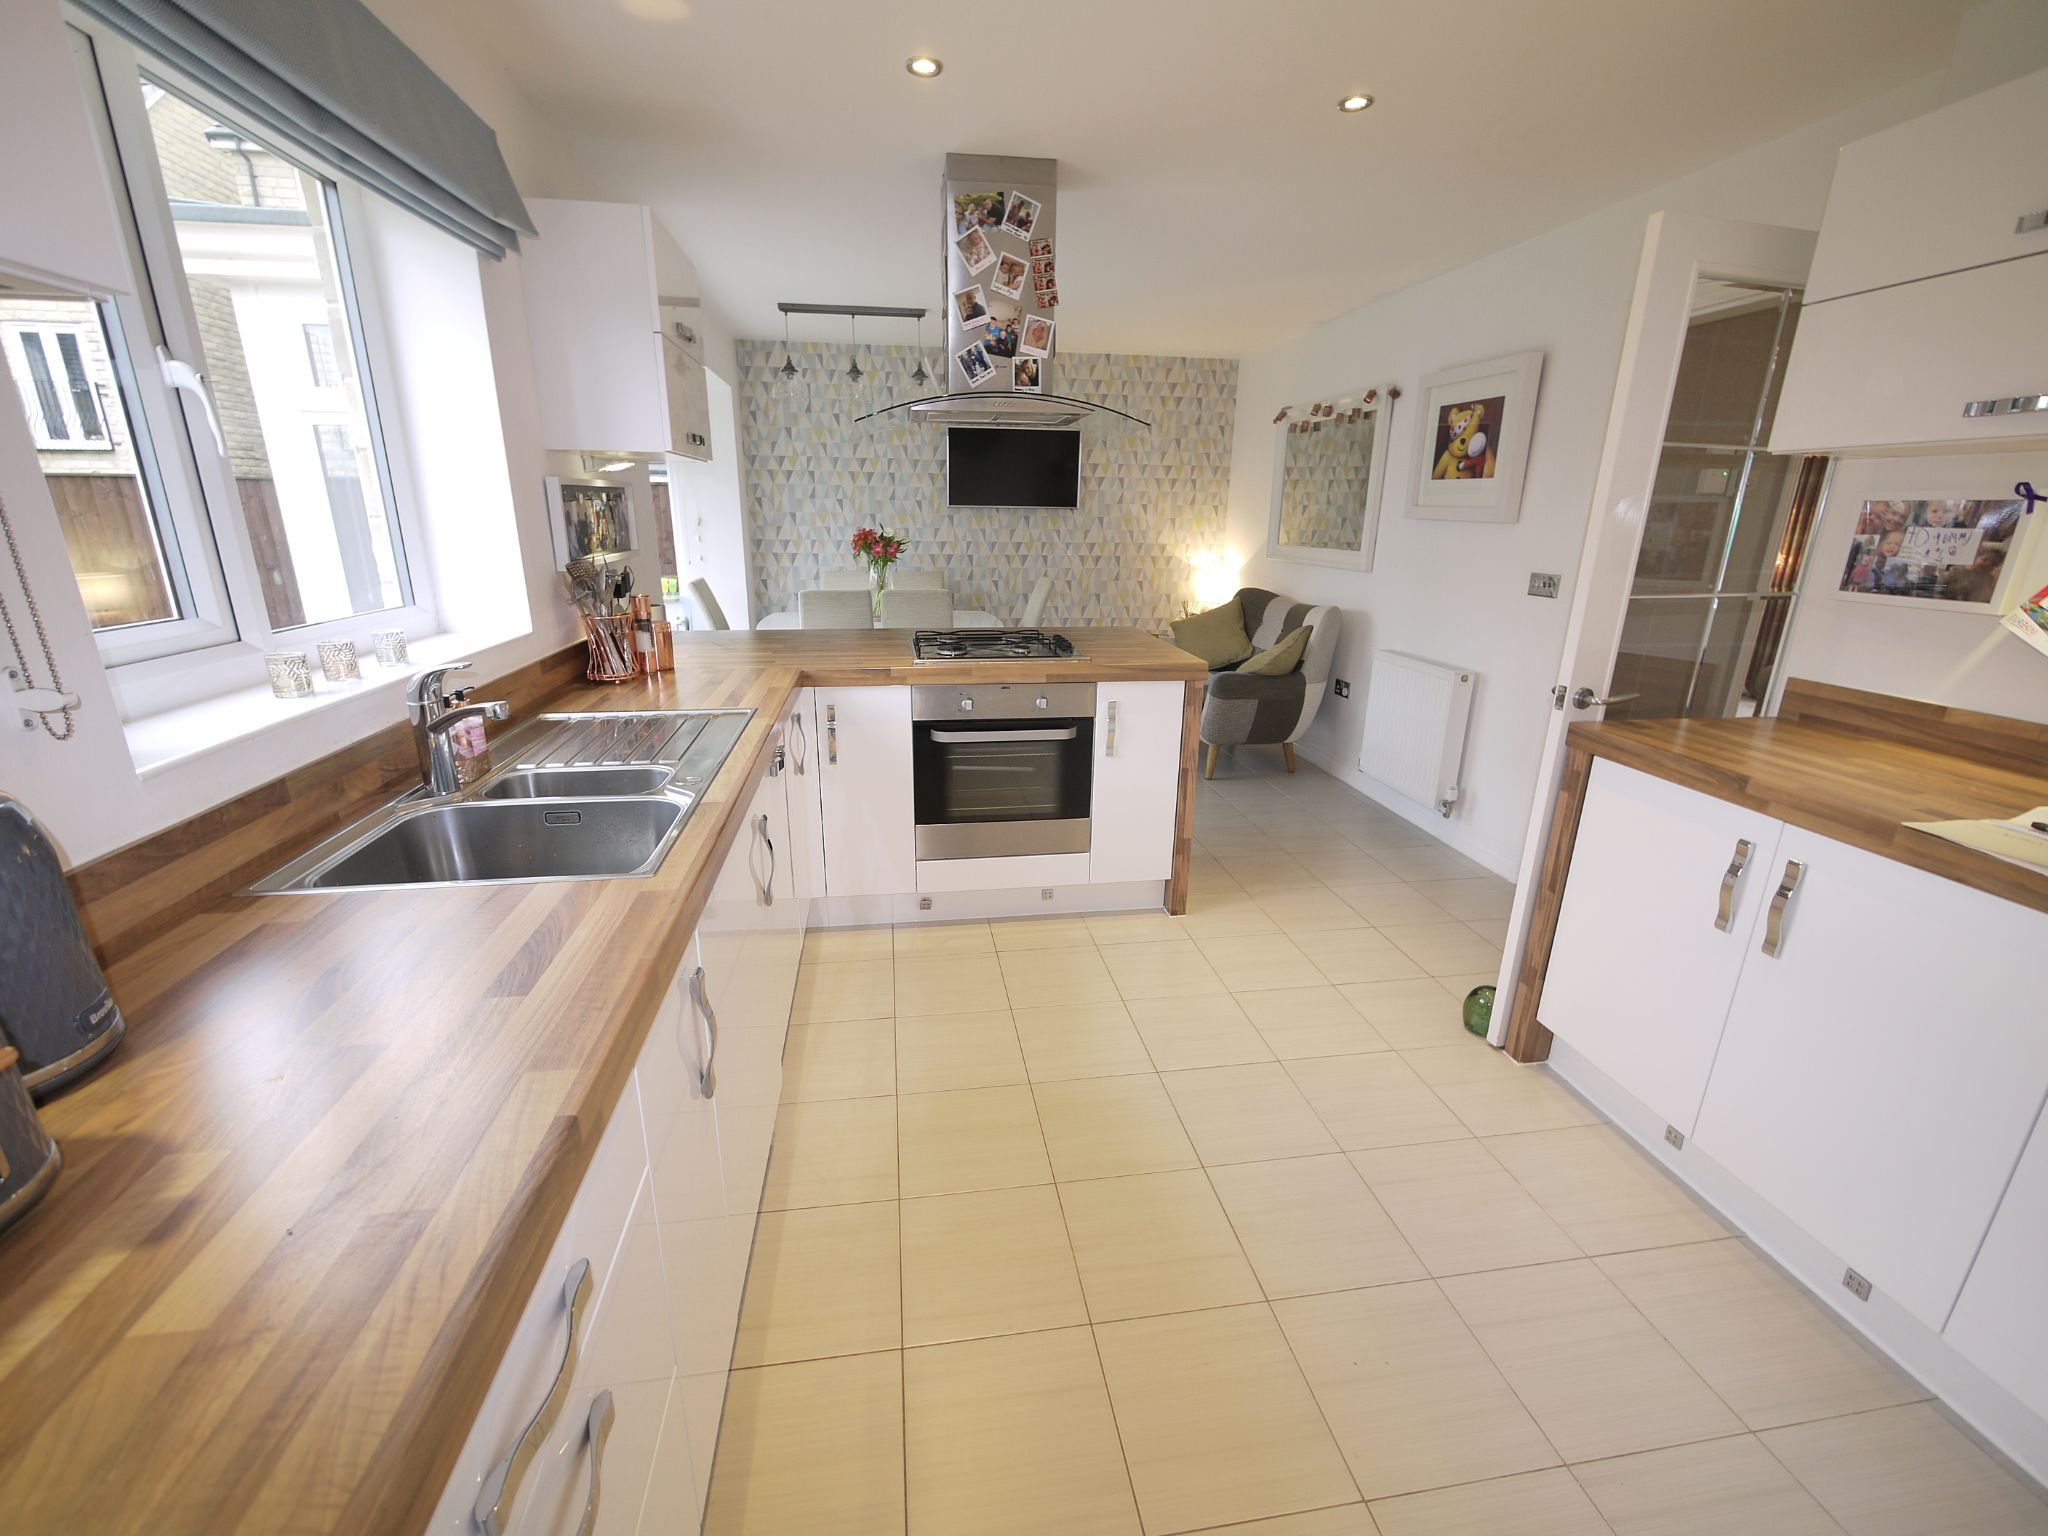 4 bedroom detached house SSTC in Huddersfield - Dining Kitchen 2.